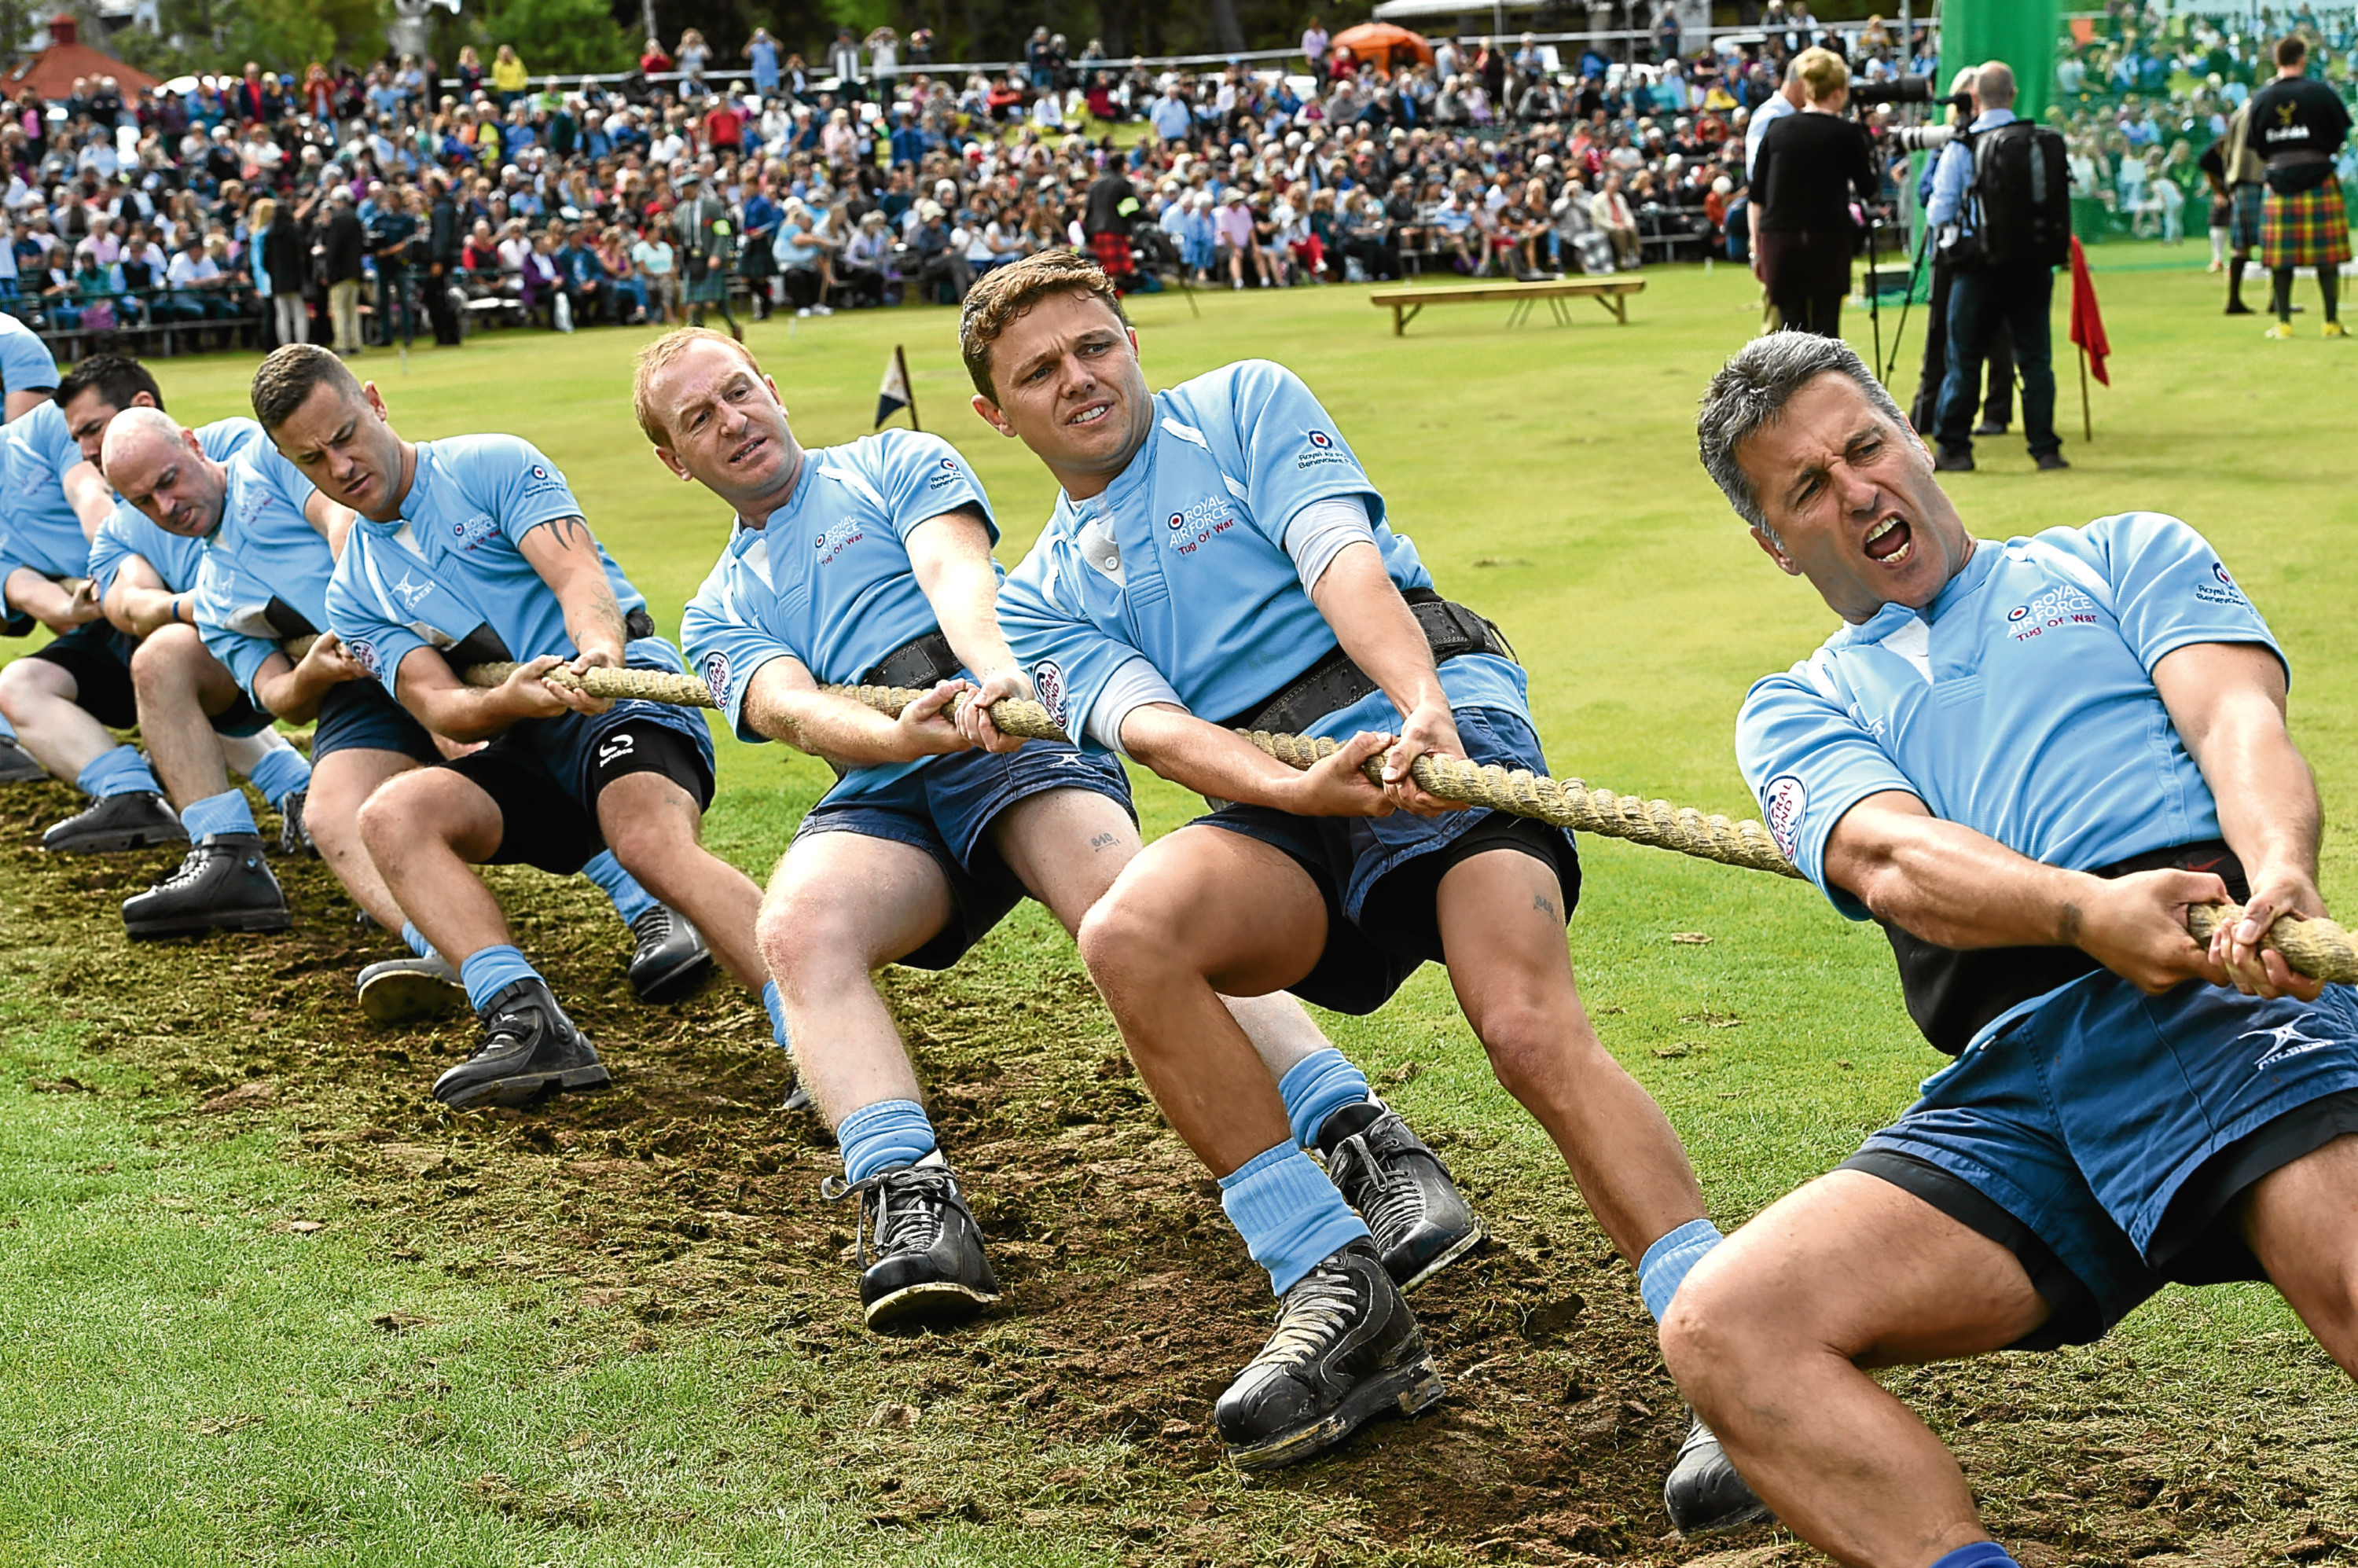 Braemar Games: In the picture are the Royal air Force, tug o war team in action. Pictures by Jim Irvine.